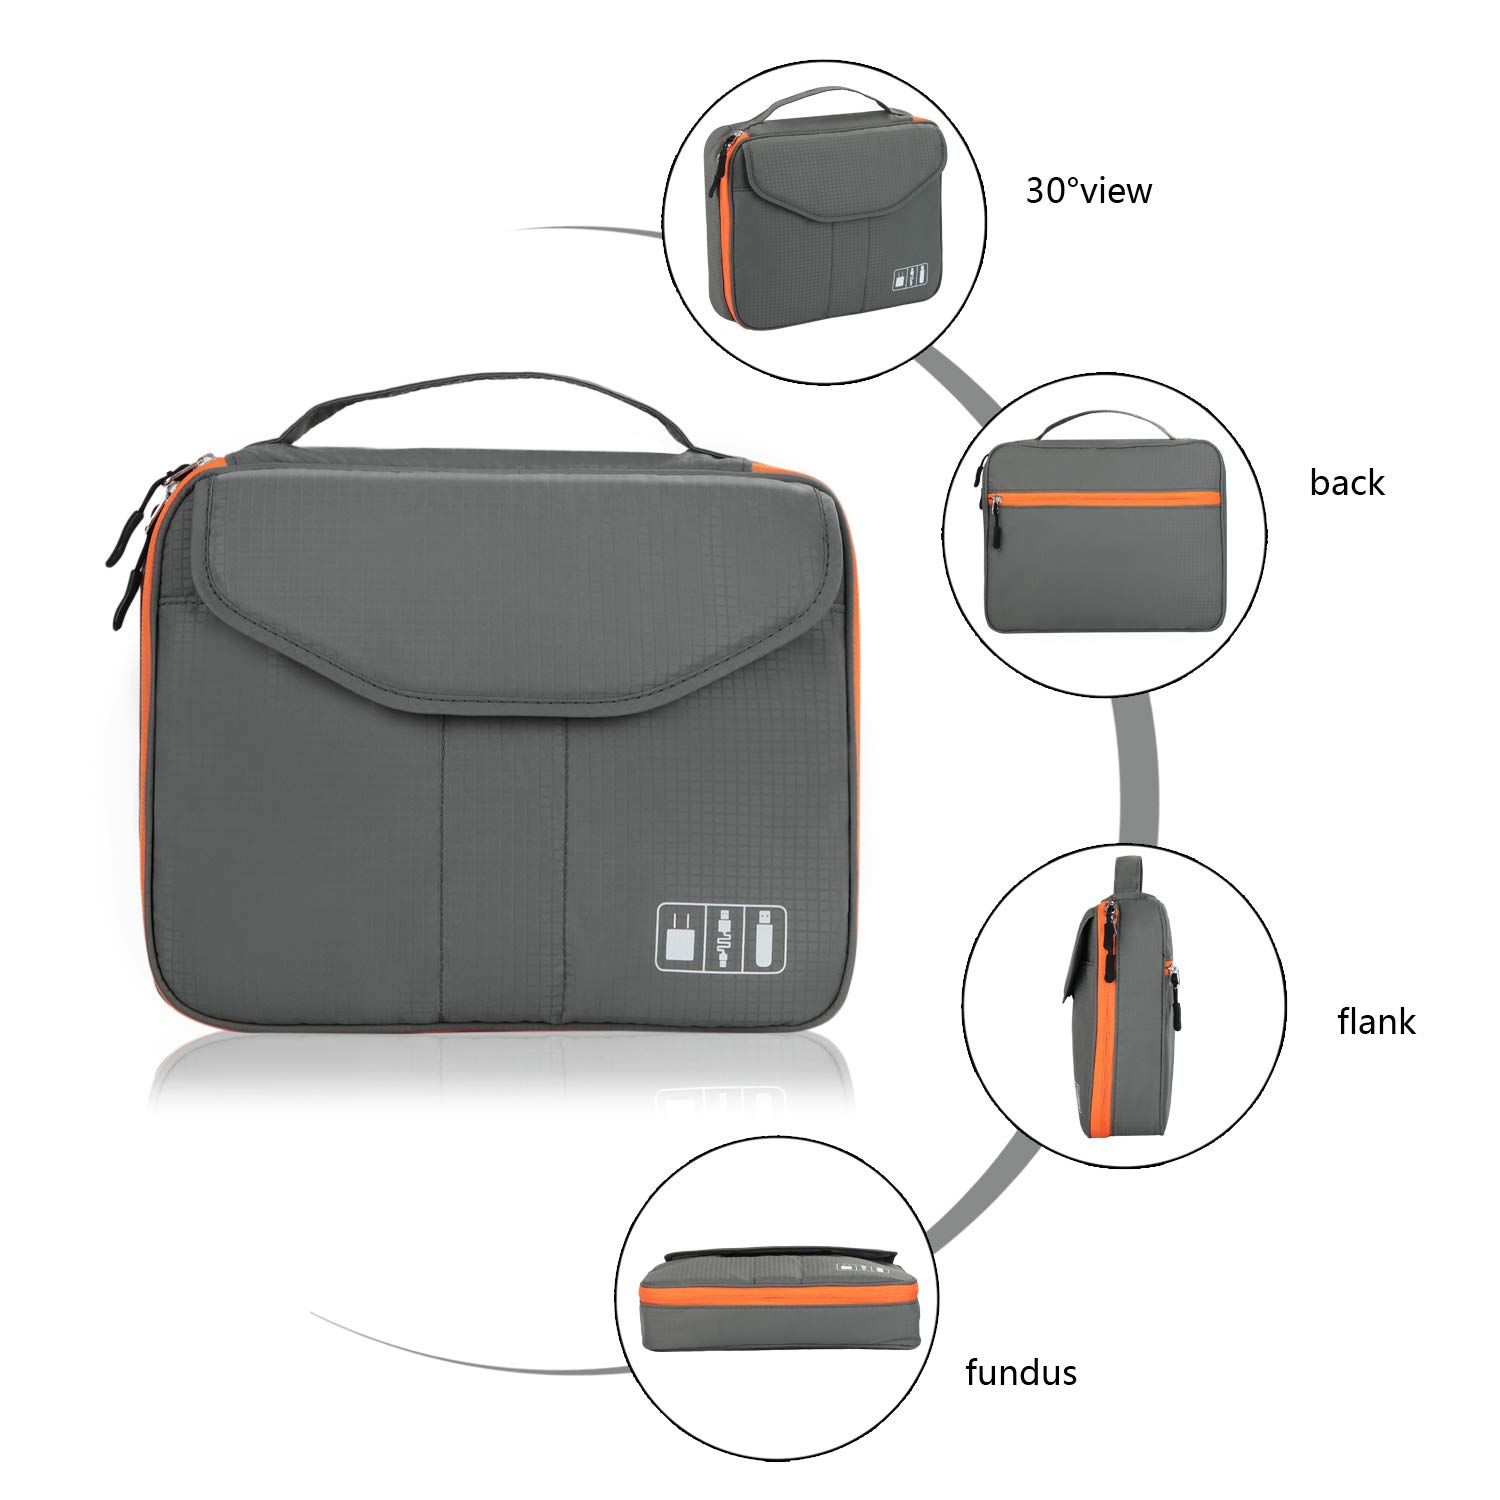 Phone Power Bank Electronic Organizer iPad or Tablet E-book Kindle ...